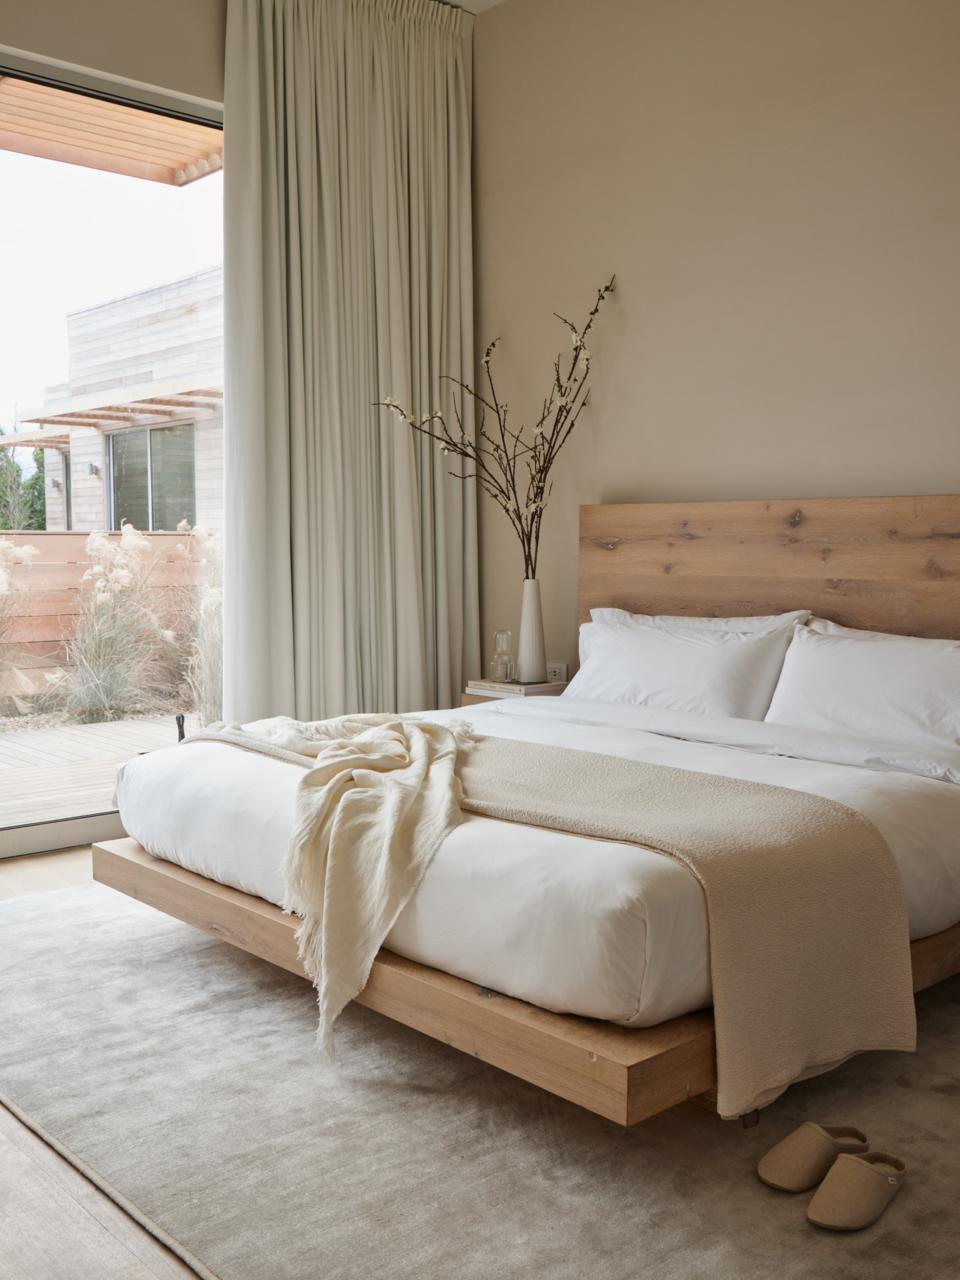 A guest room at Shou Sugi Ban House.